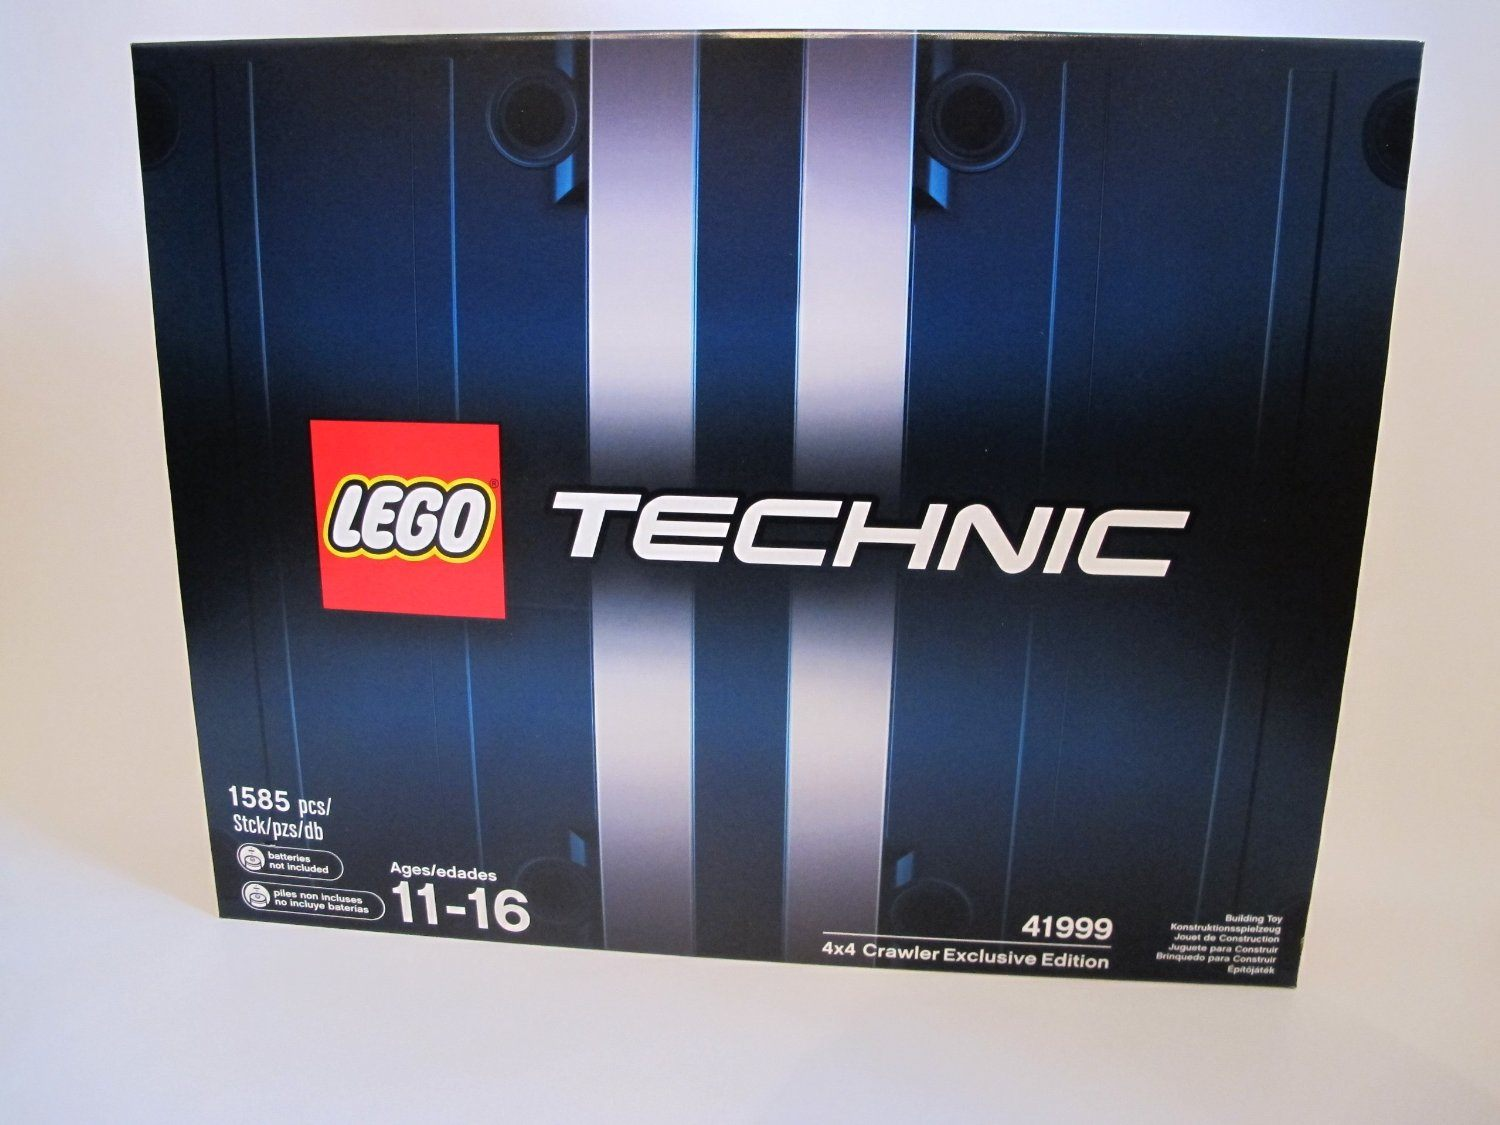 LEGO TECHNIC 4x4 Crawler Exclusive Edition Set 41999